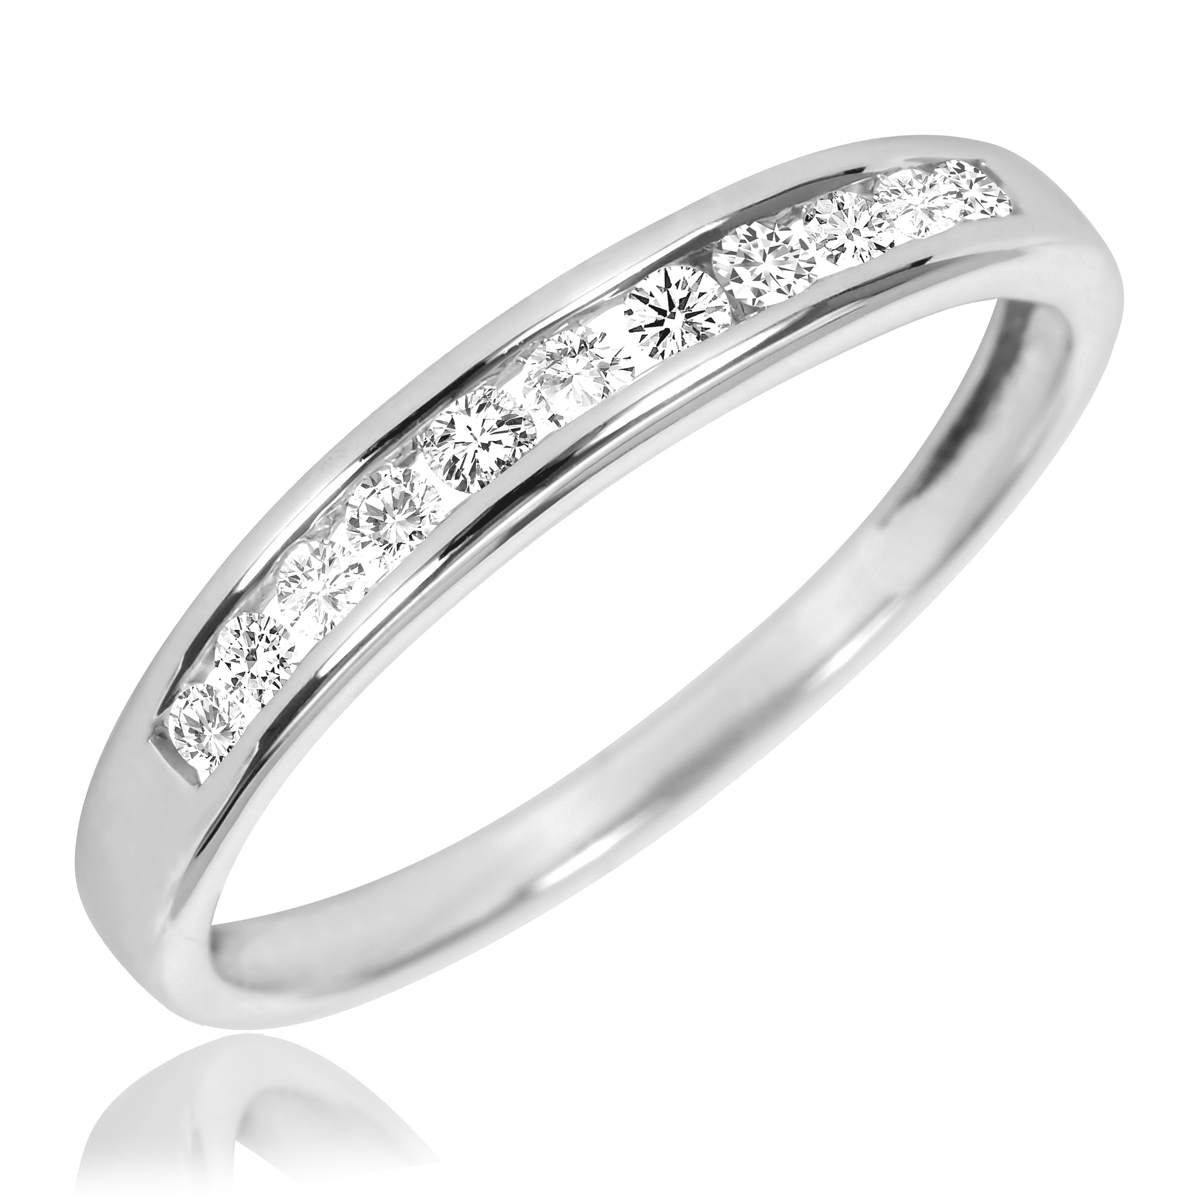 tw diamond womens bridal wedding ring set 10k white gold my trio rings br500w10k - White Gold Wedding Rings Sets